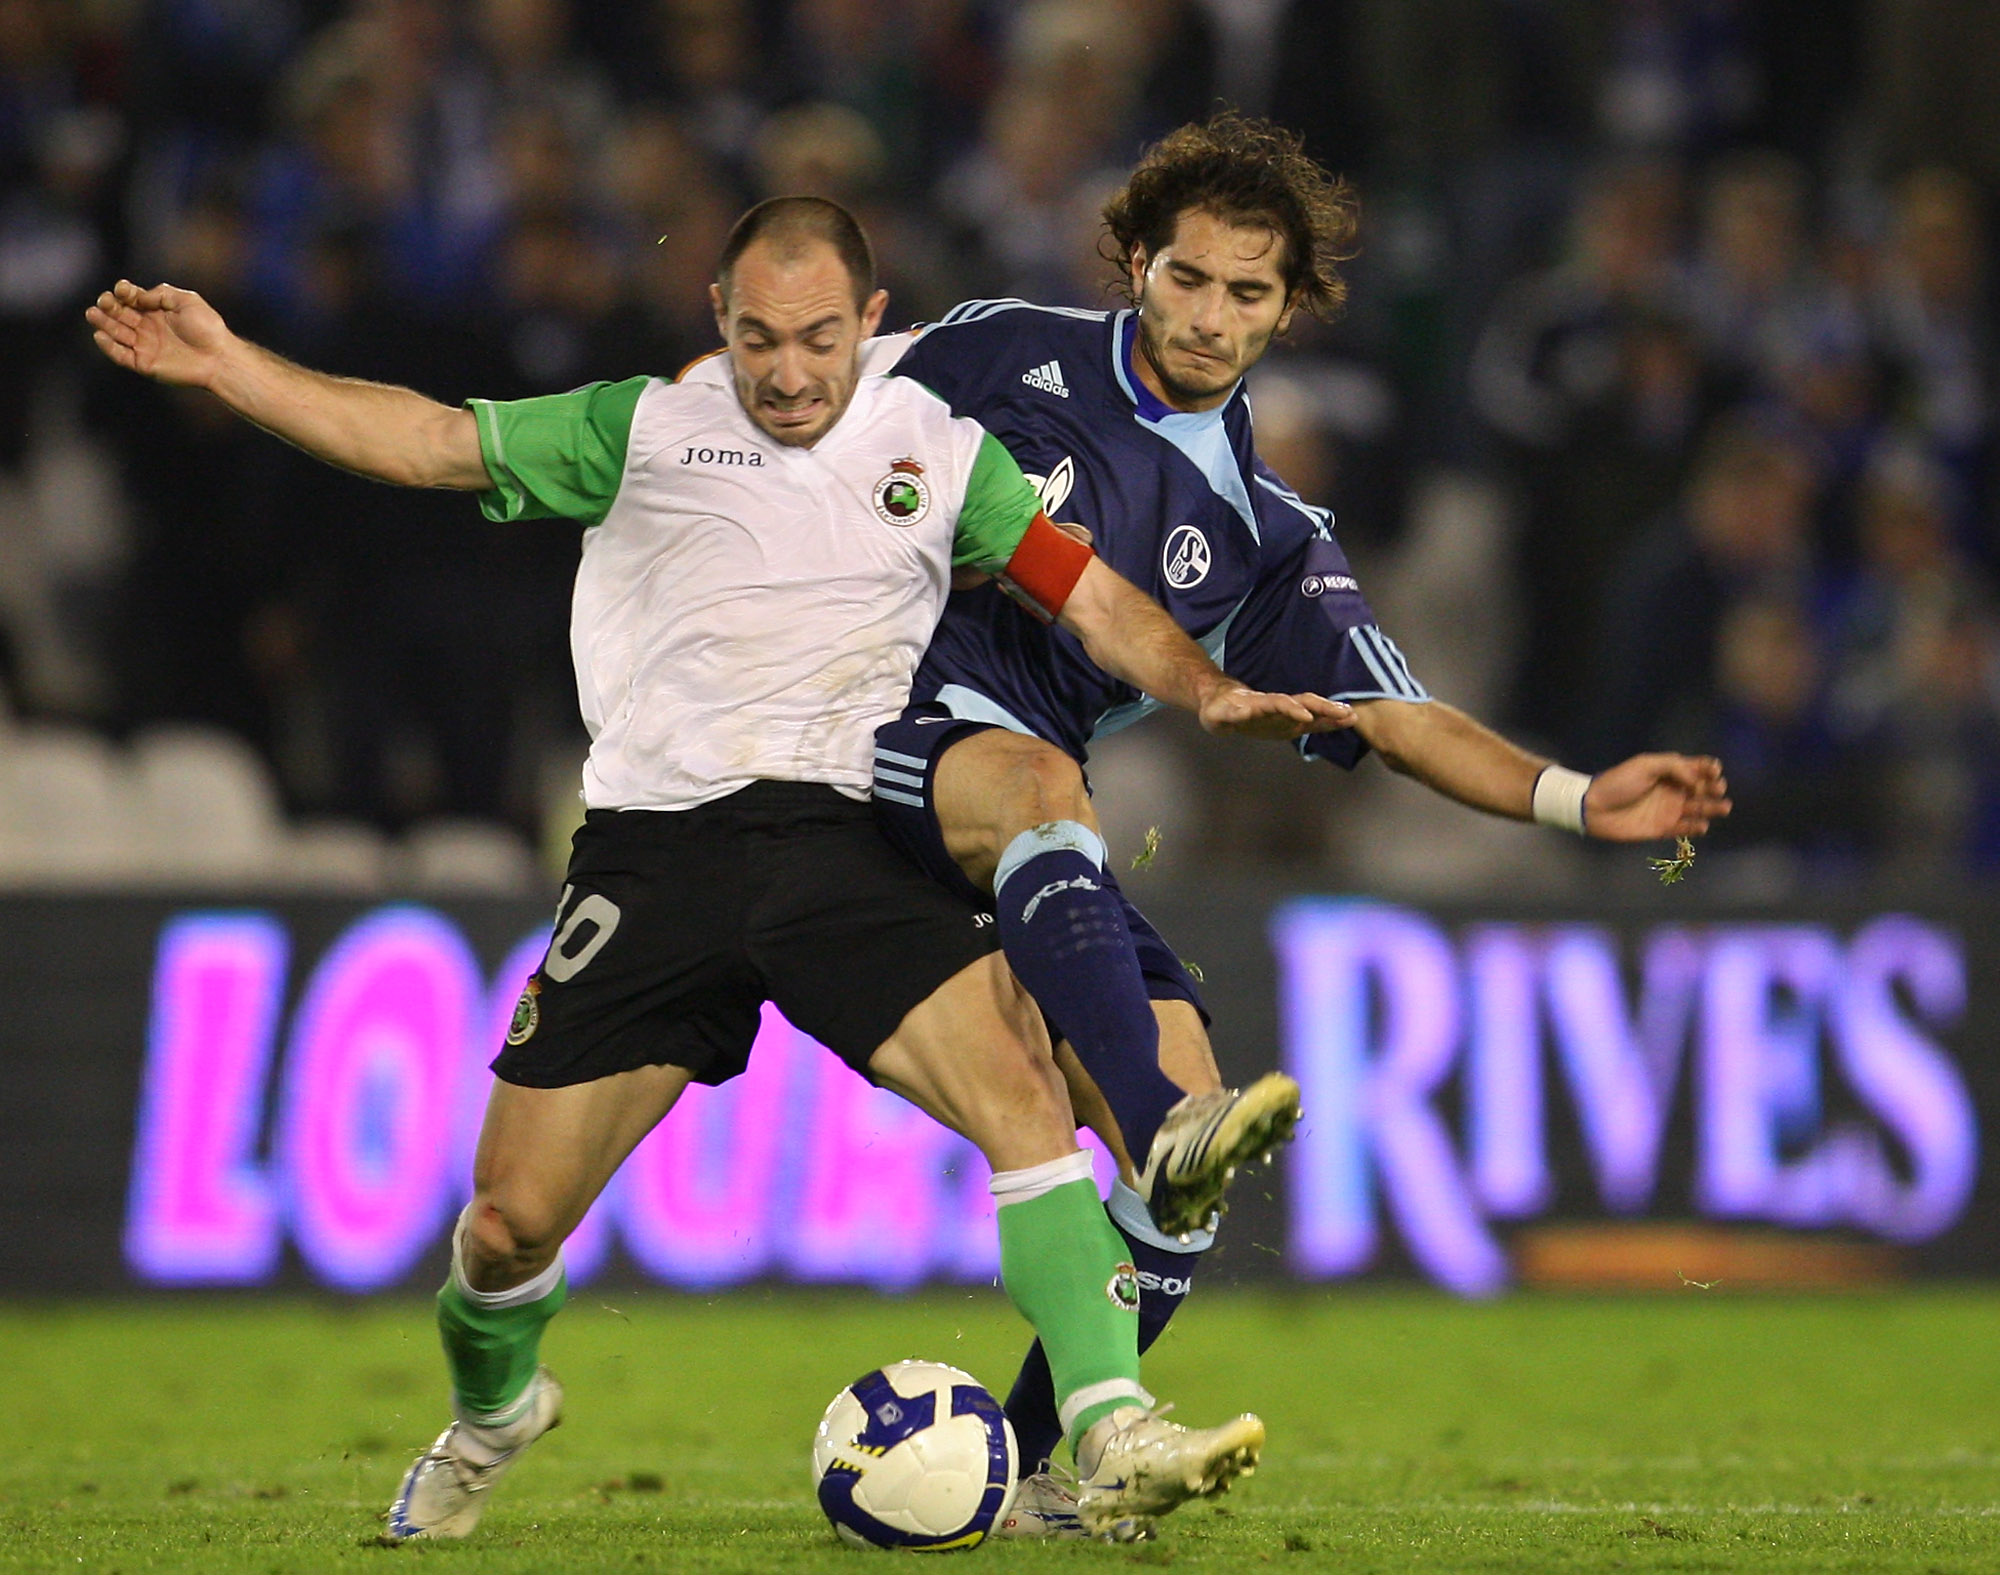 SANTANDER, SPAIN - NOVEMBER 06:  Halil Altintop (R) of Schalke 04 duels for the ball with Pedro Munitis of Racing Santander during the UEFA Cup group A match between Racing Santander and Schalke 04 at the El Sardinero stadium on November 6, 2008 in Santan